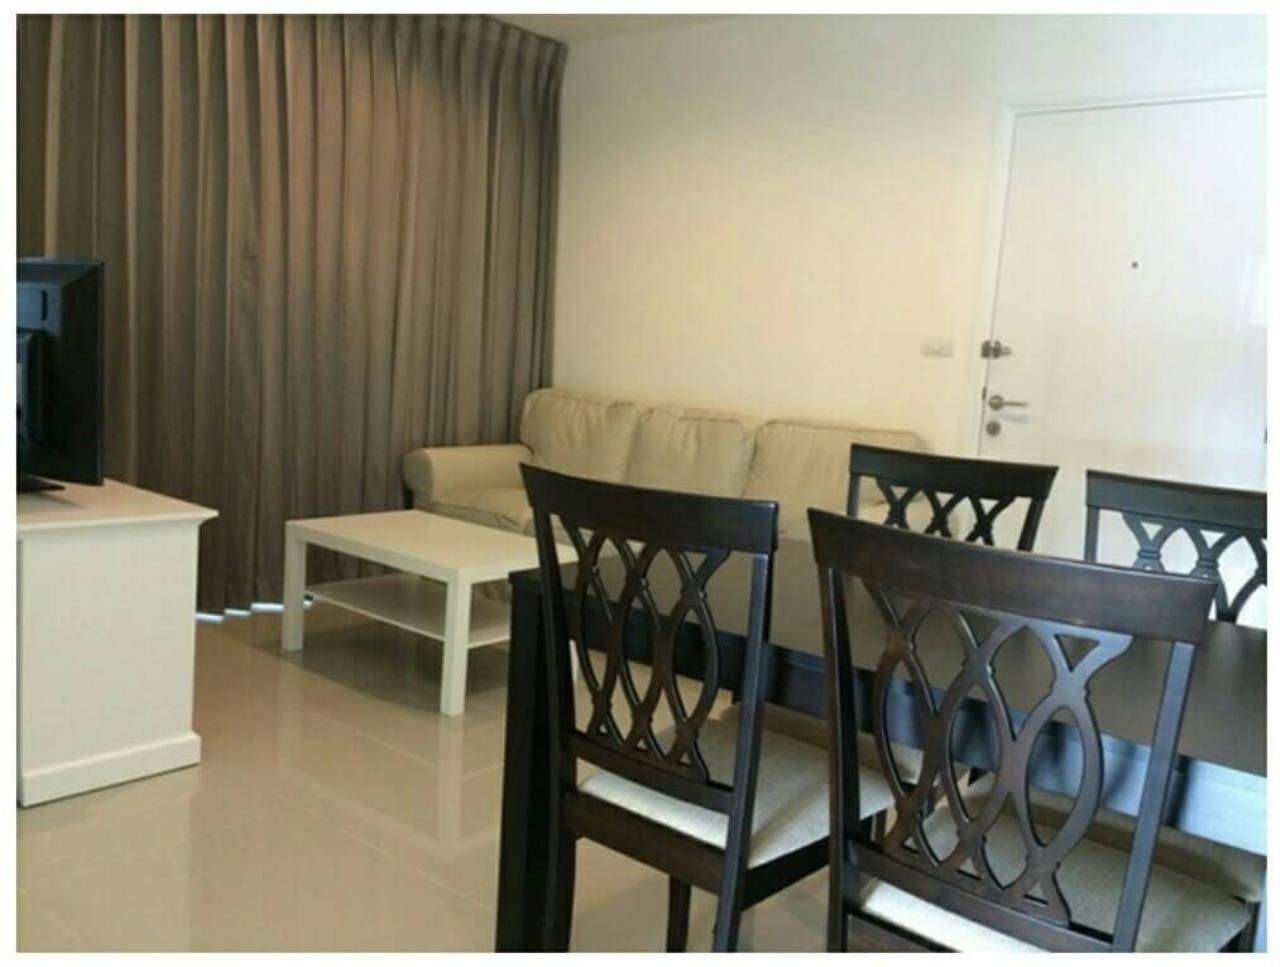 RE/MAX All Star Realty Agency's Aspire Sukhumvit Soi 48 condo two bed sale BTS Phra Khanong) 4